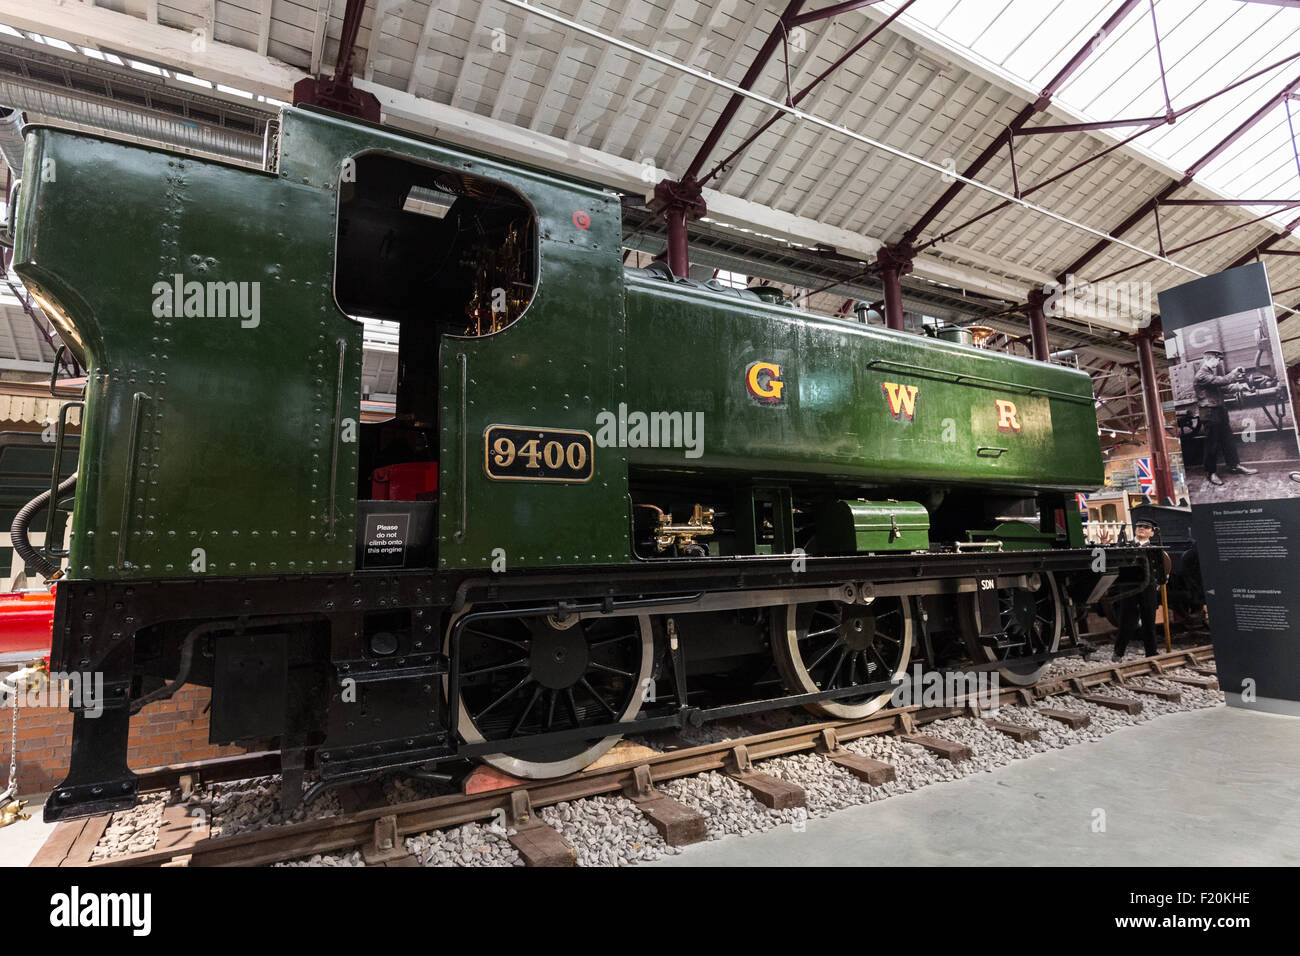 Great Western Railway 9400 is a 0-6-0 pannier tank steam locomotive used for shunting and banking duties. Swindon Stock Photo